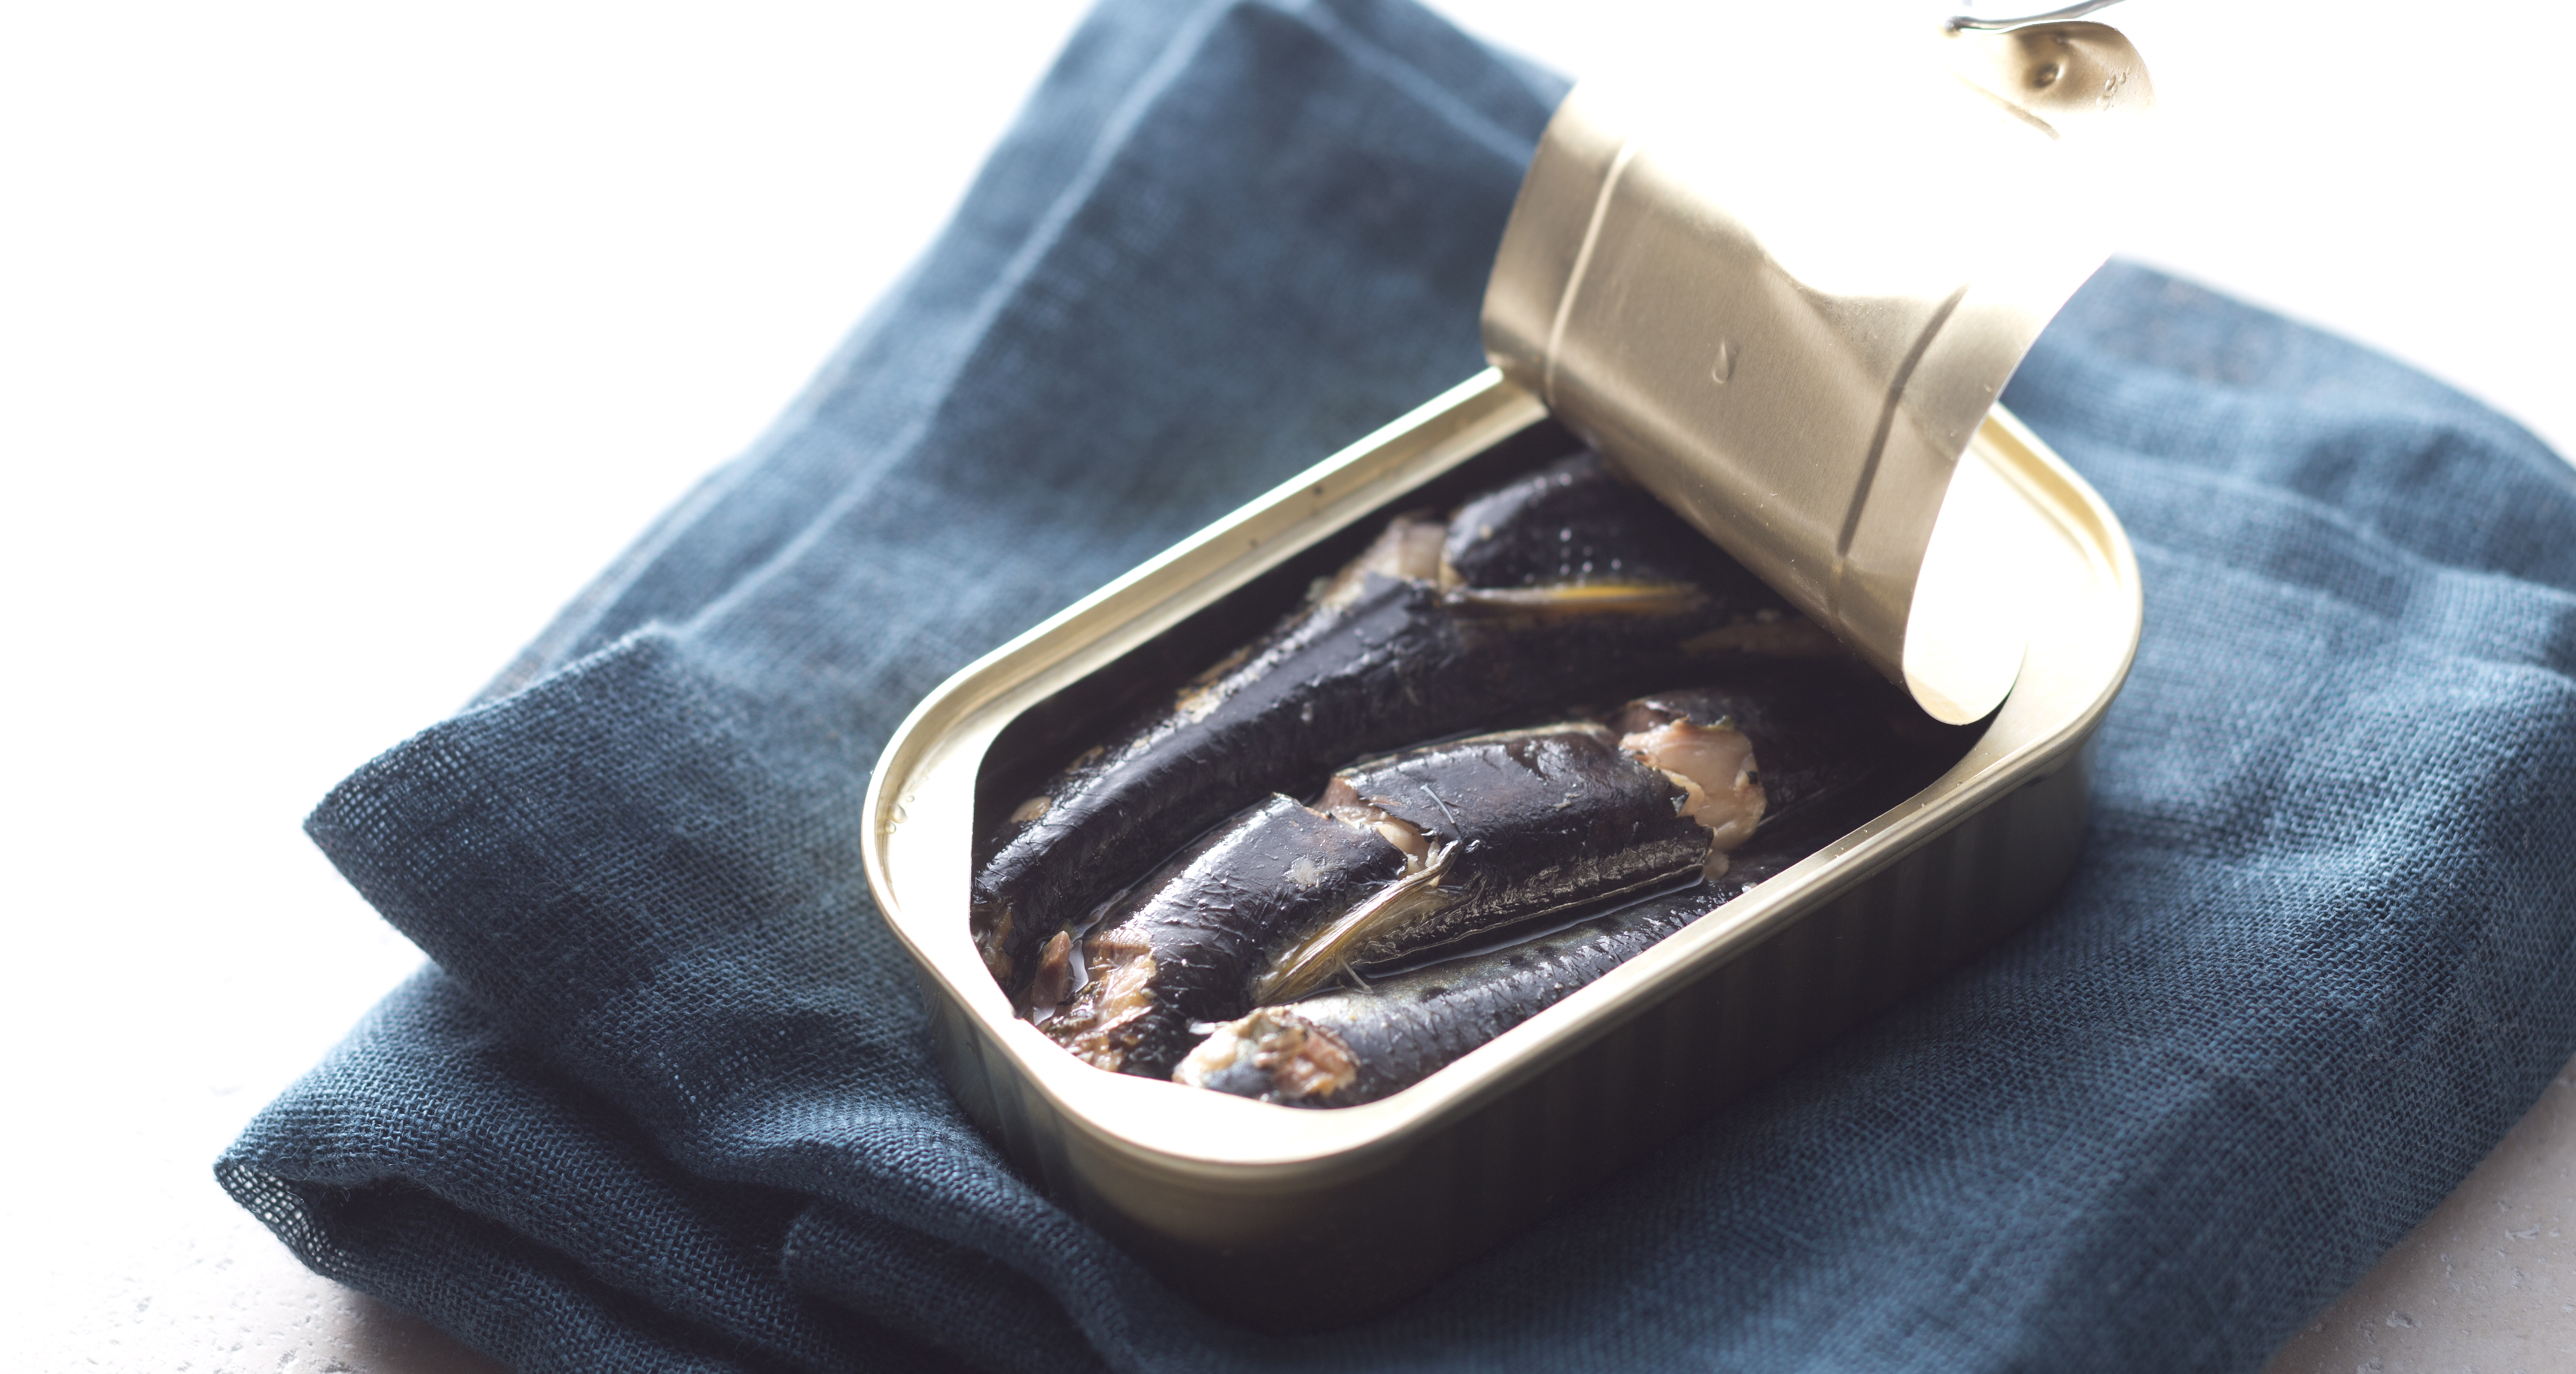 Sardines Nutrition: Are Sardines Good For You?